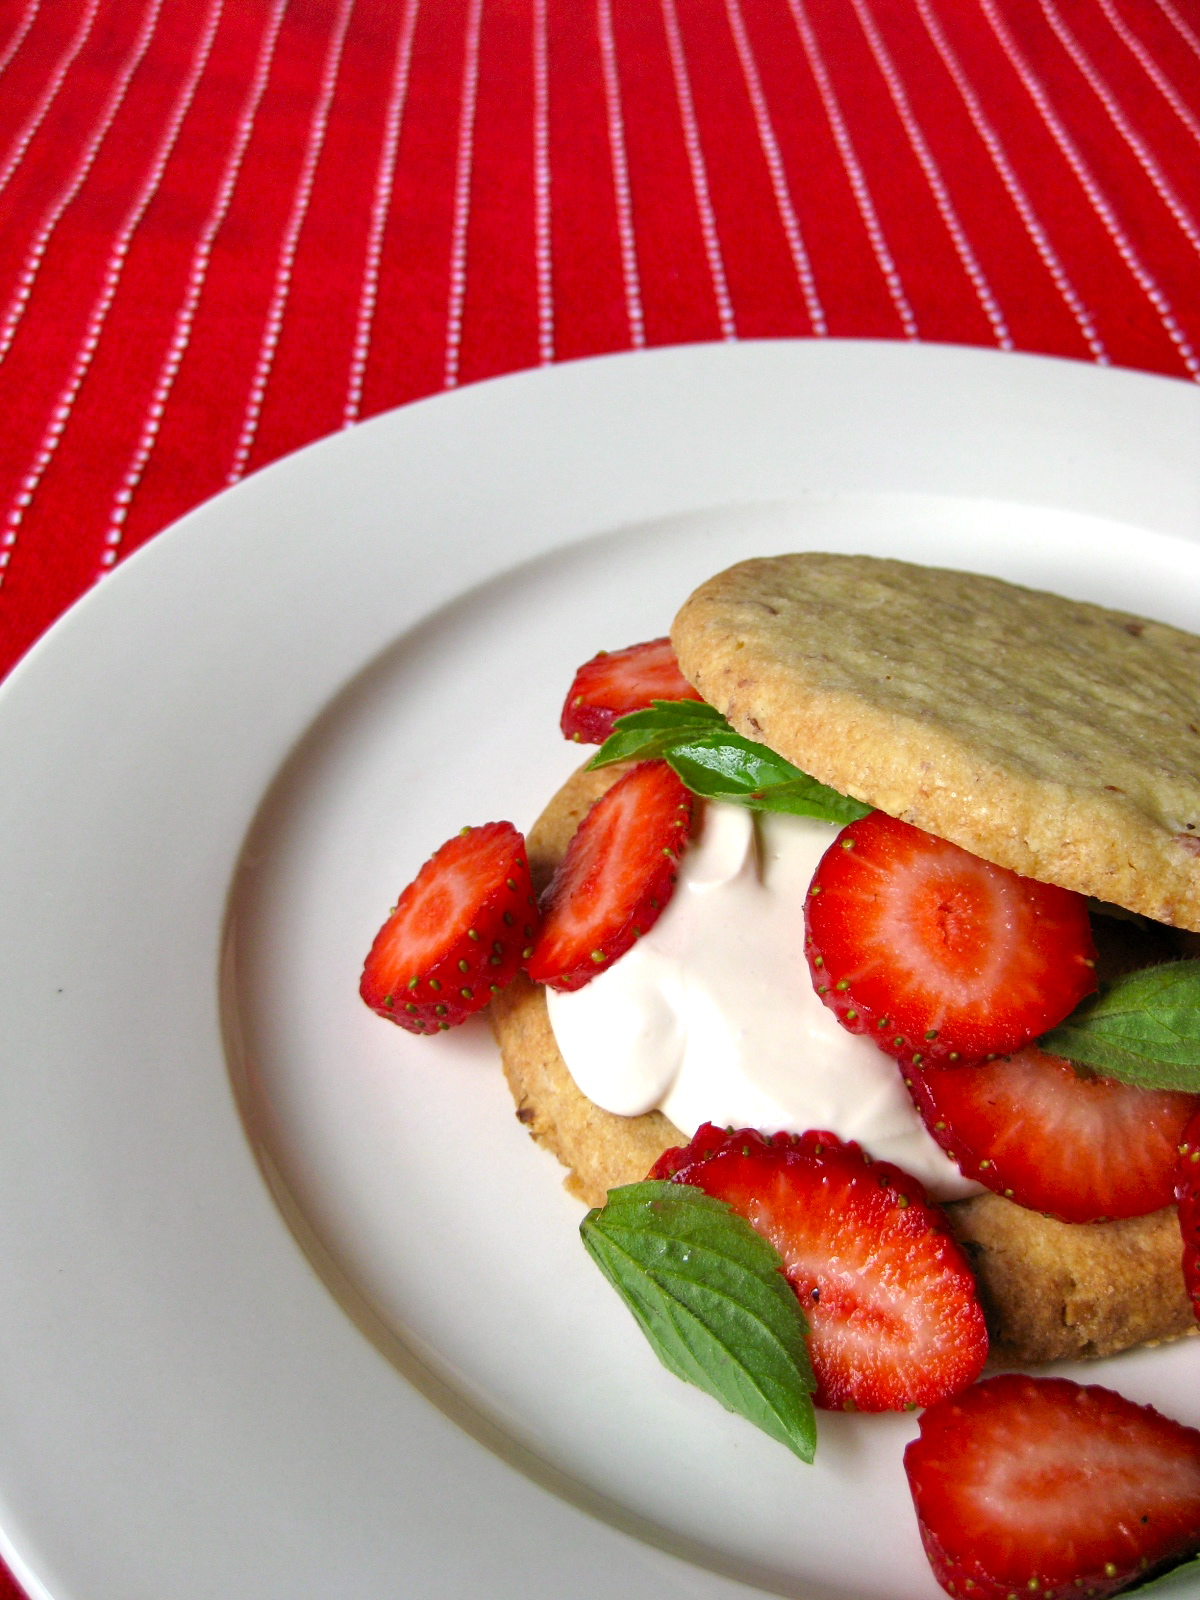 Strawberry Shortcake with baby basil and brown sugar cream